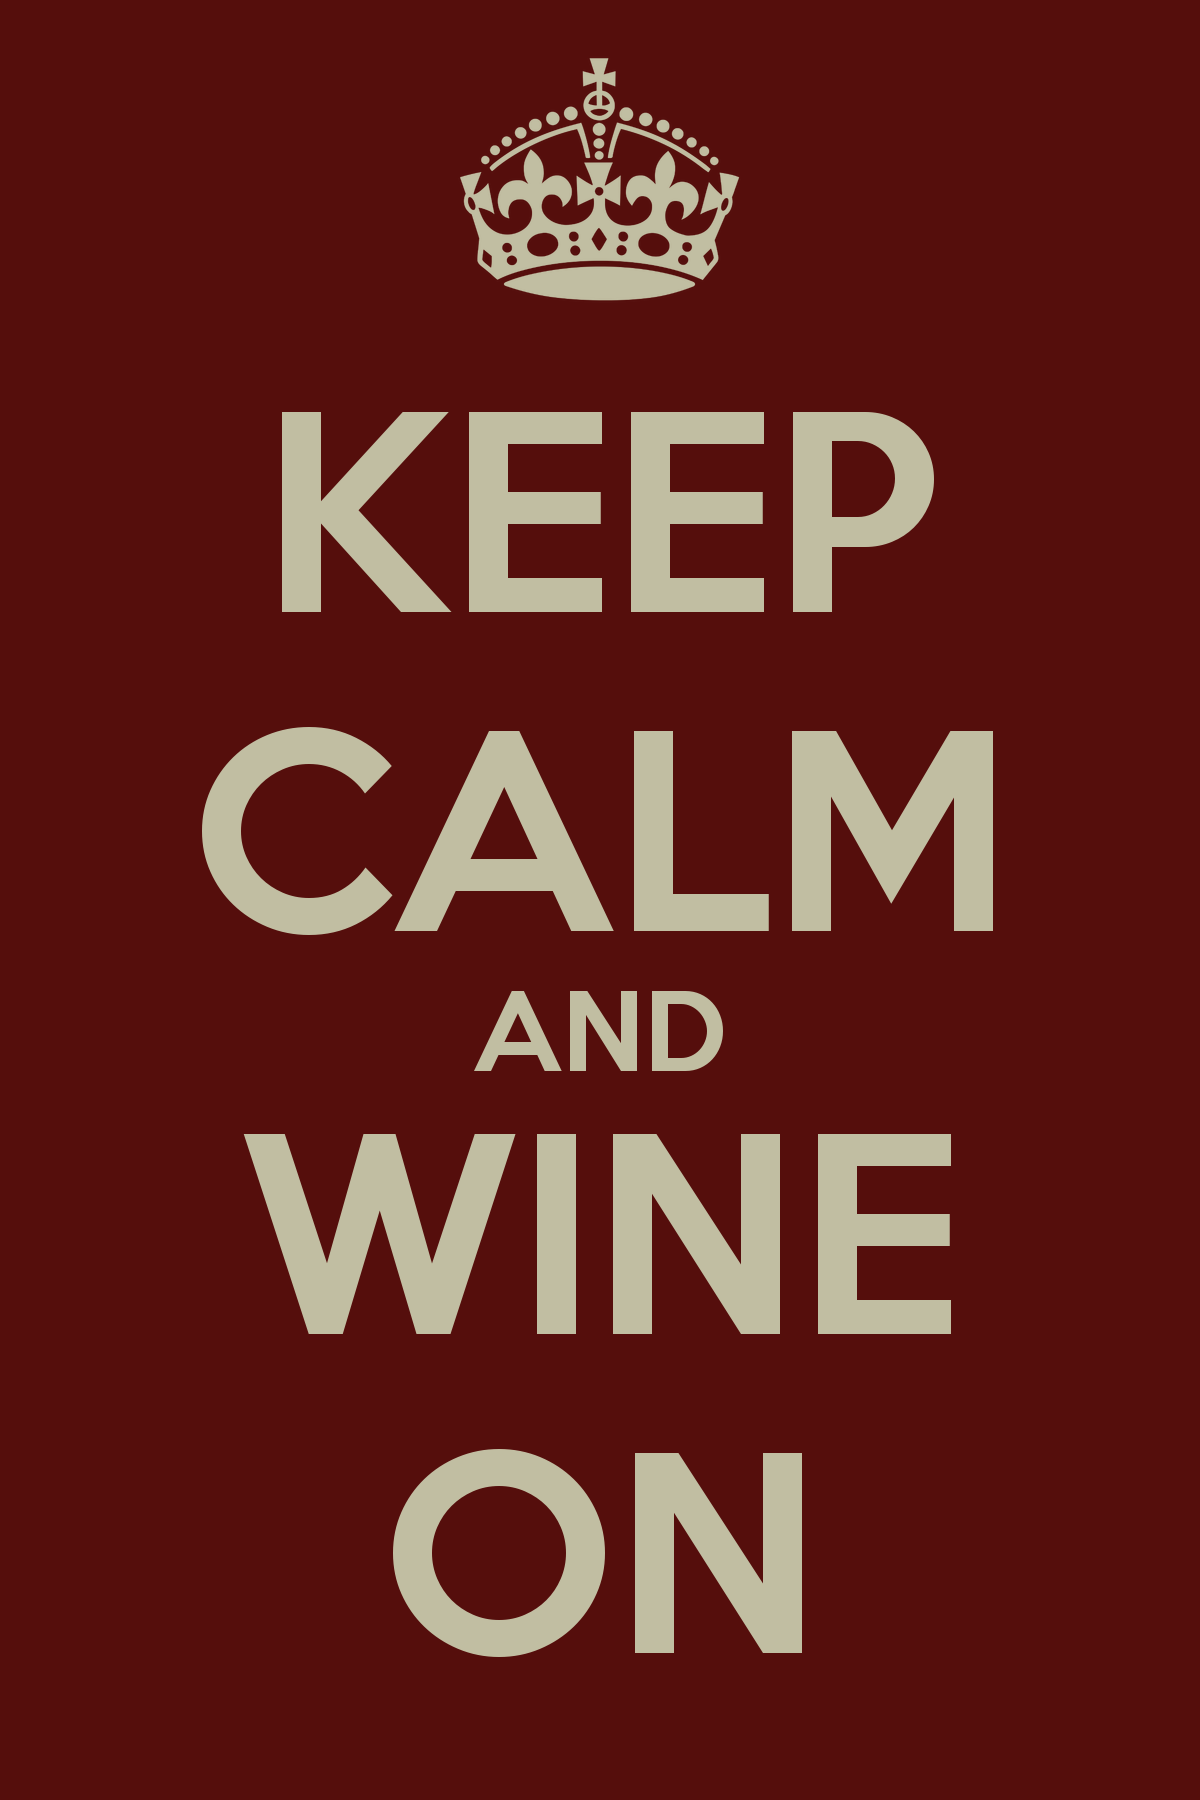 keep calm and wine on | drinking habits | pinterest | keep calm